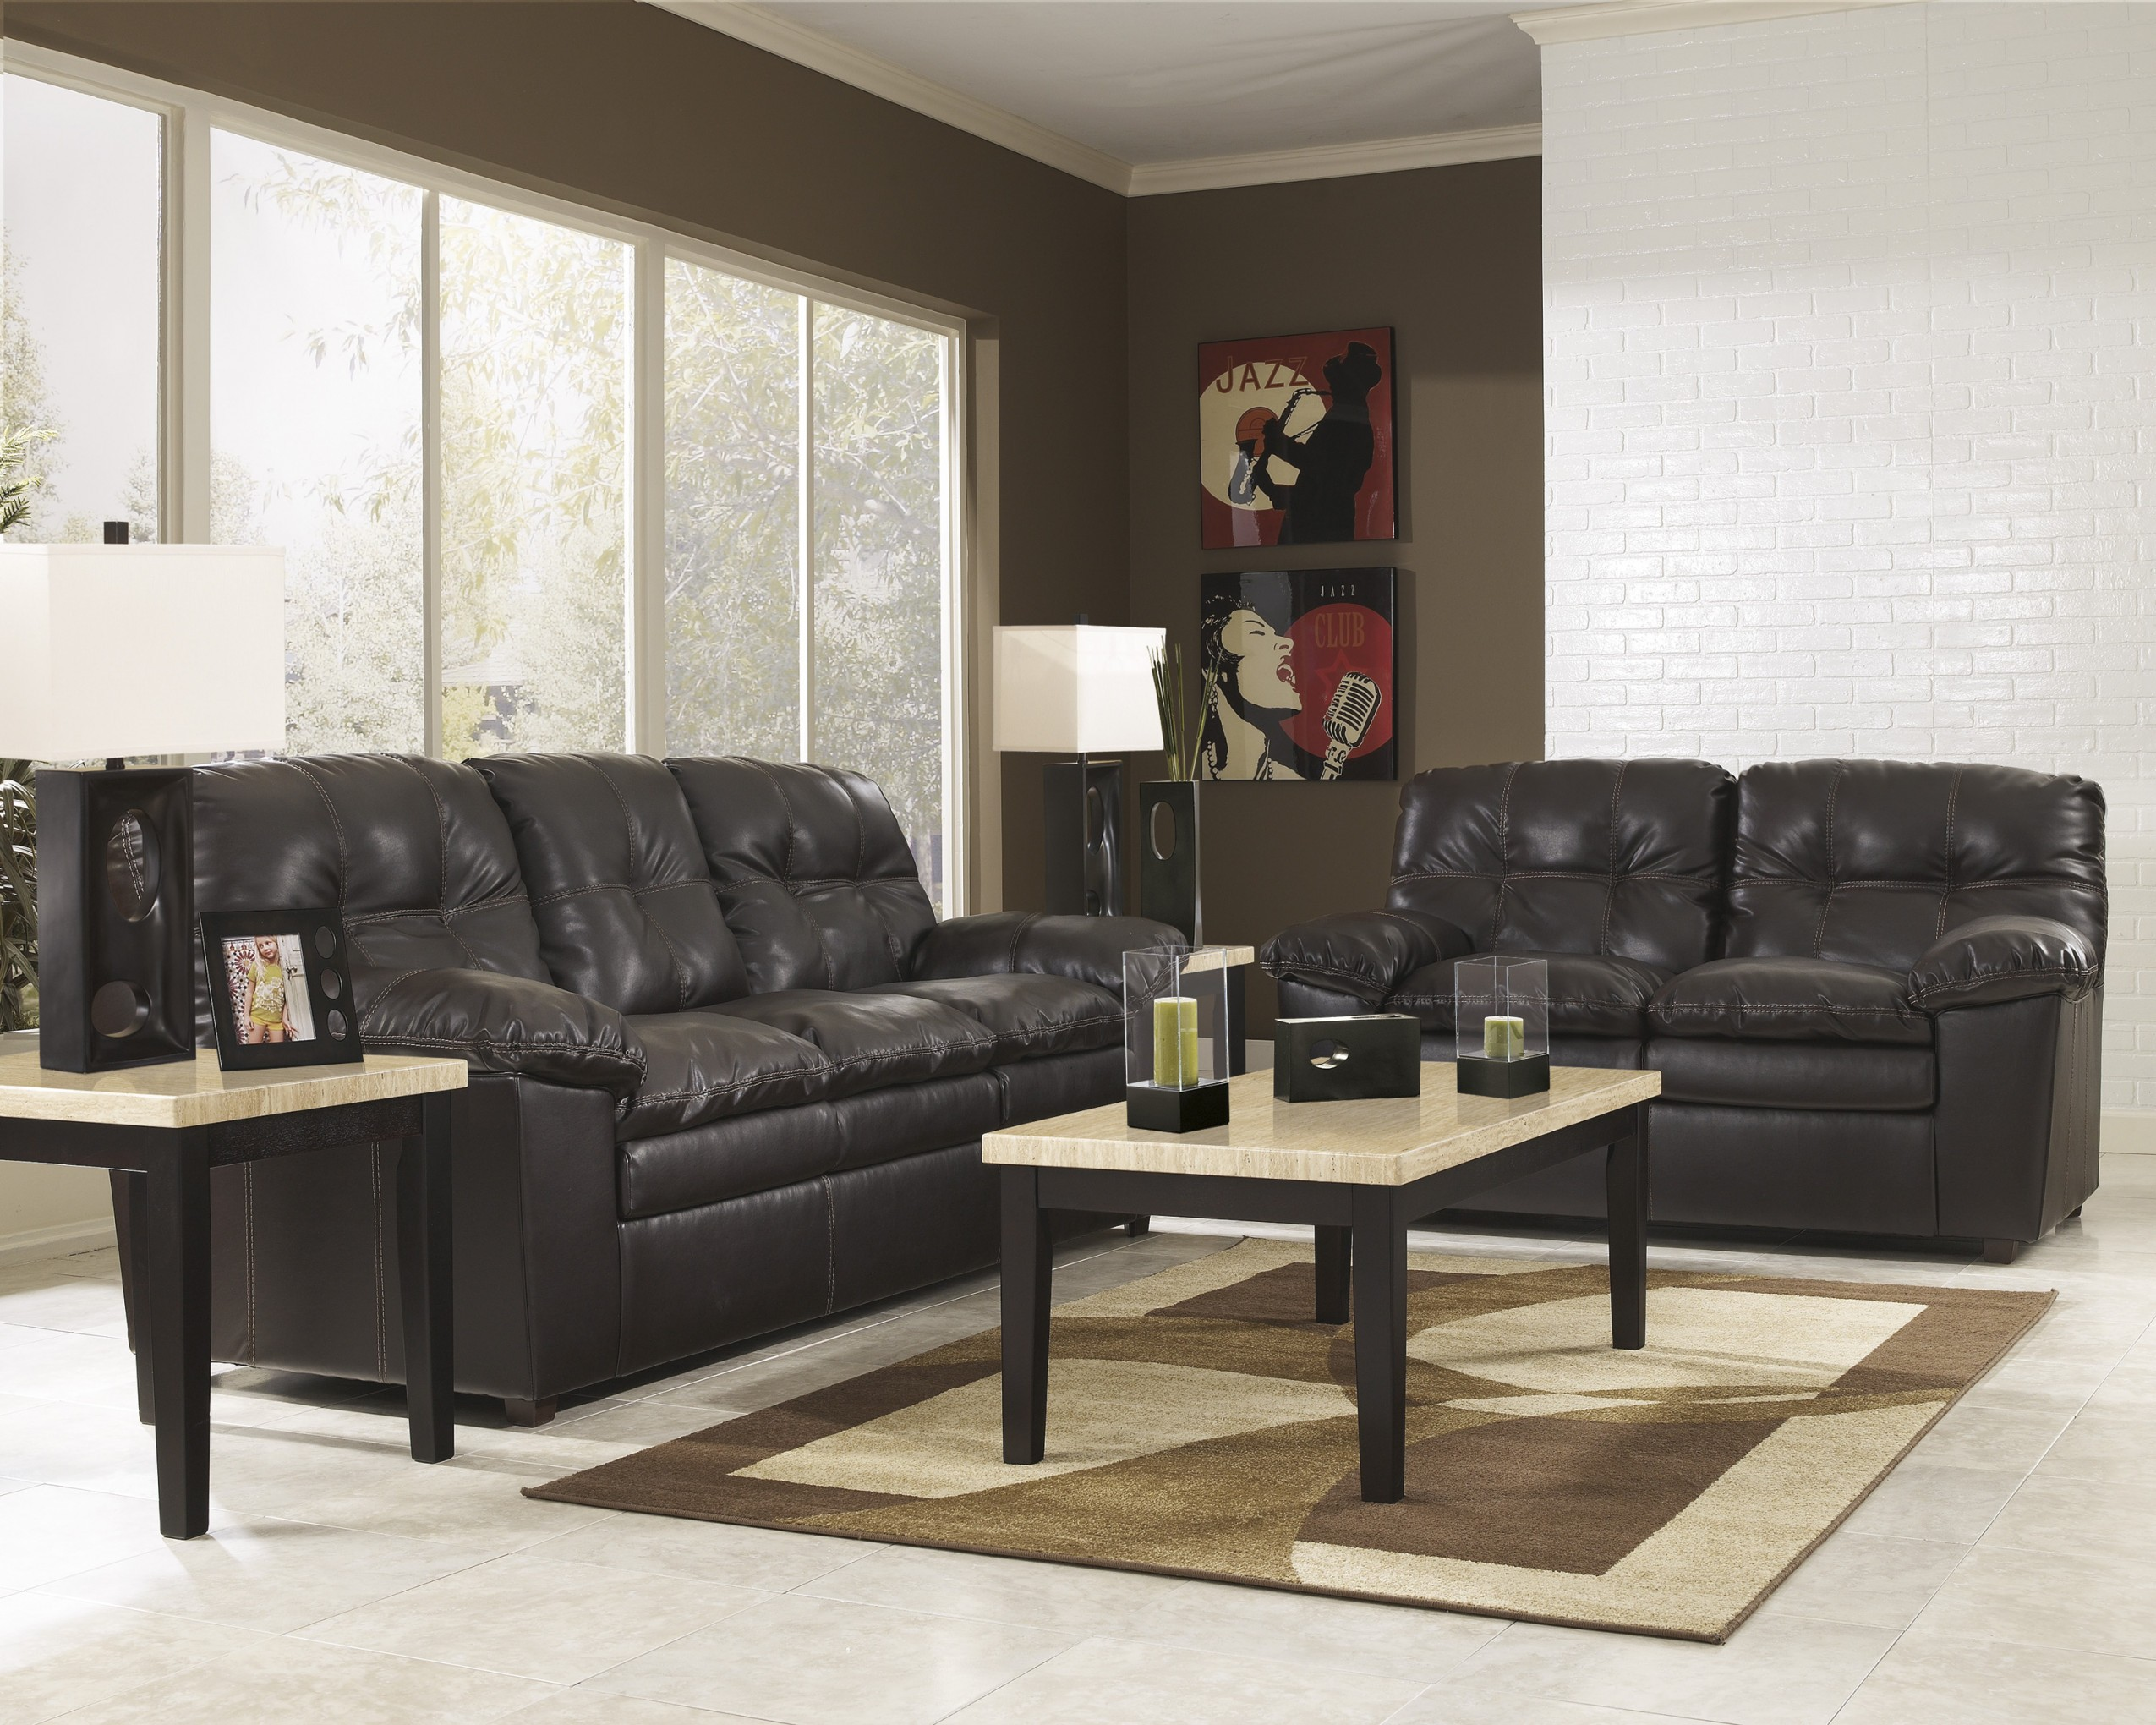 Jordan's Furniture Living Room Sets